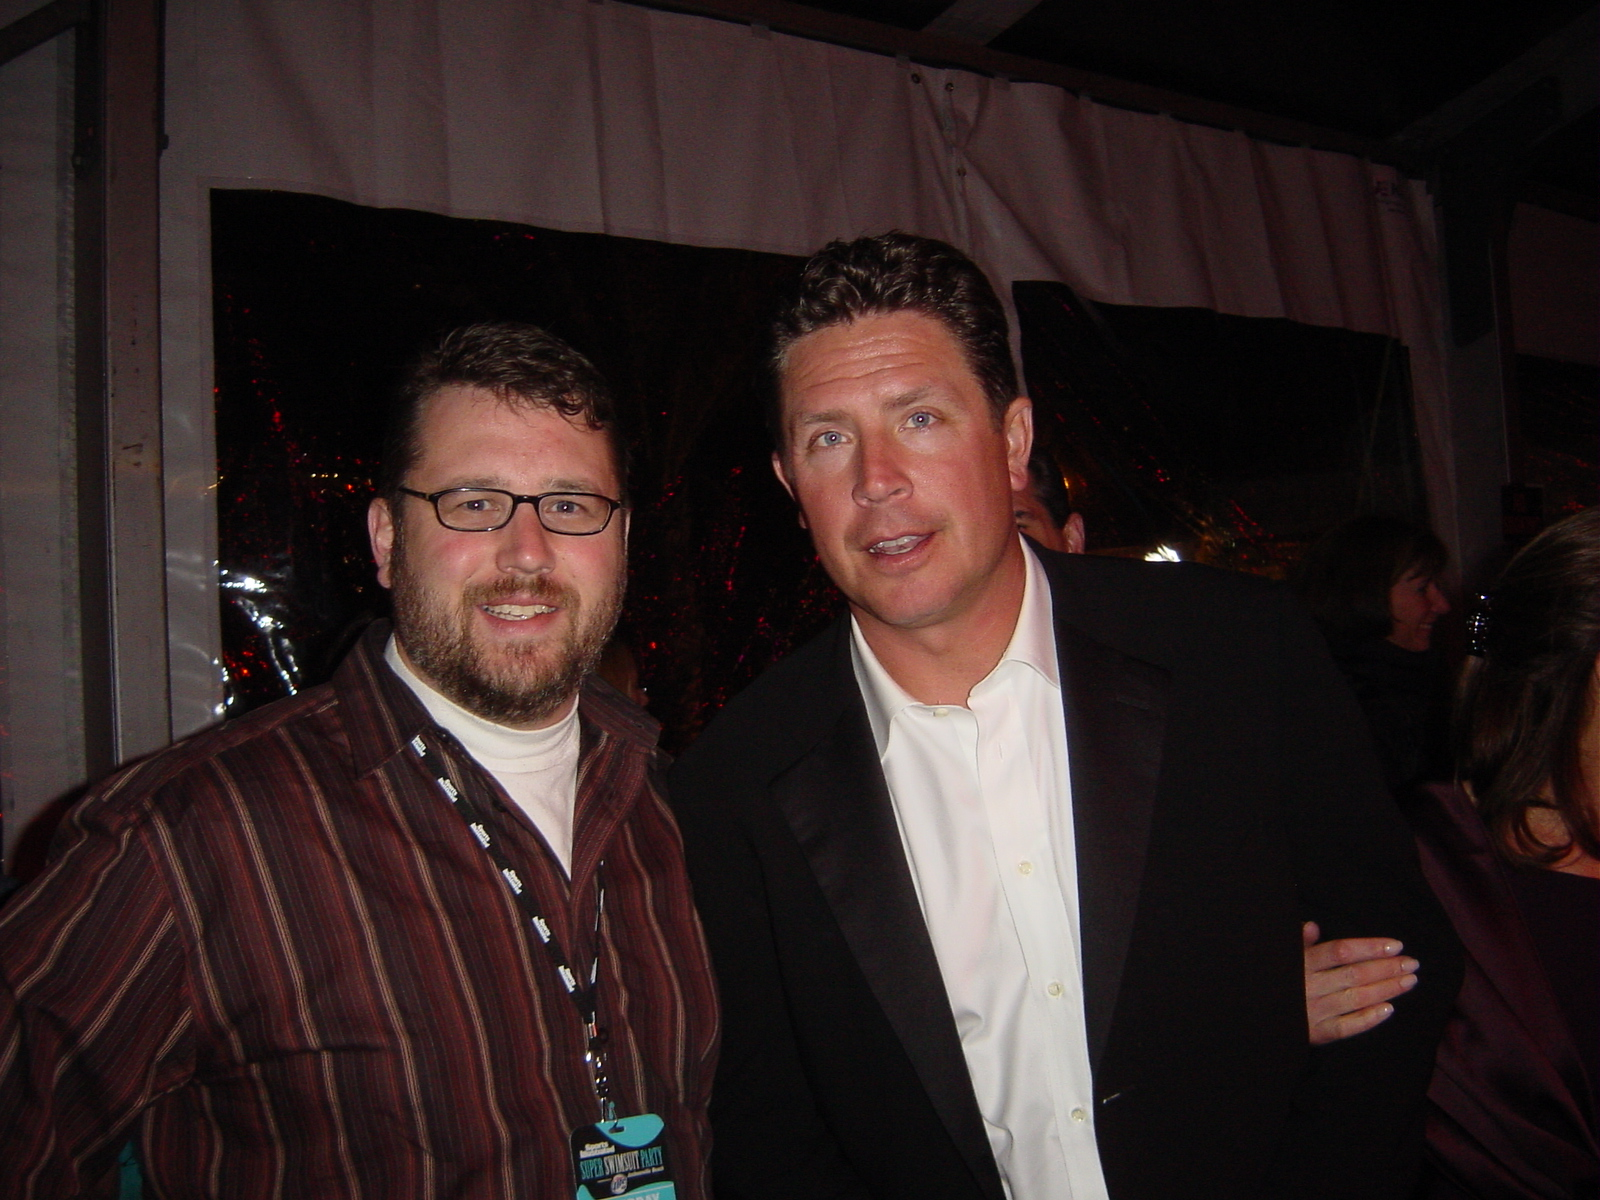 Mike Dinndorf and Dan Marino